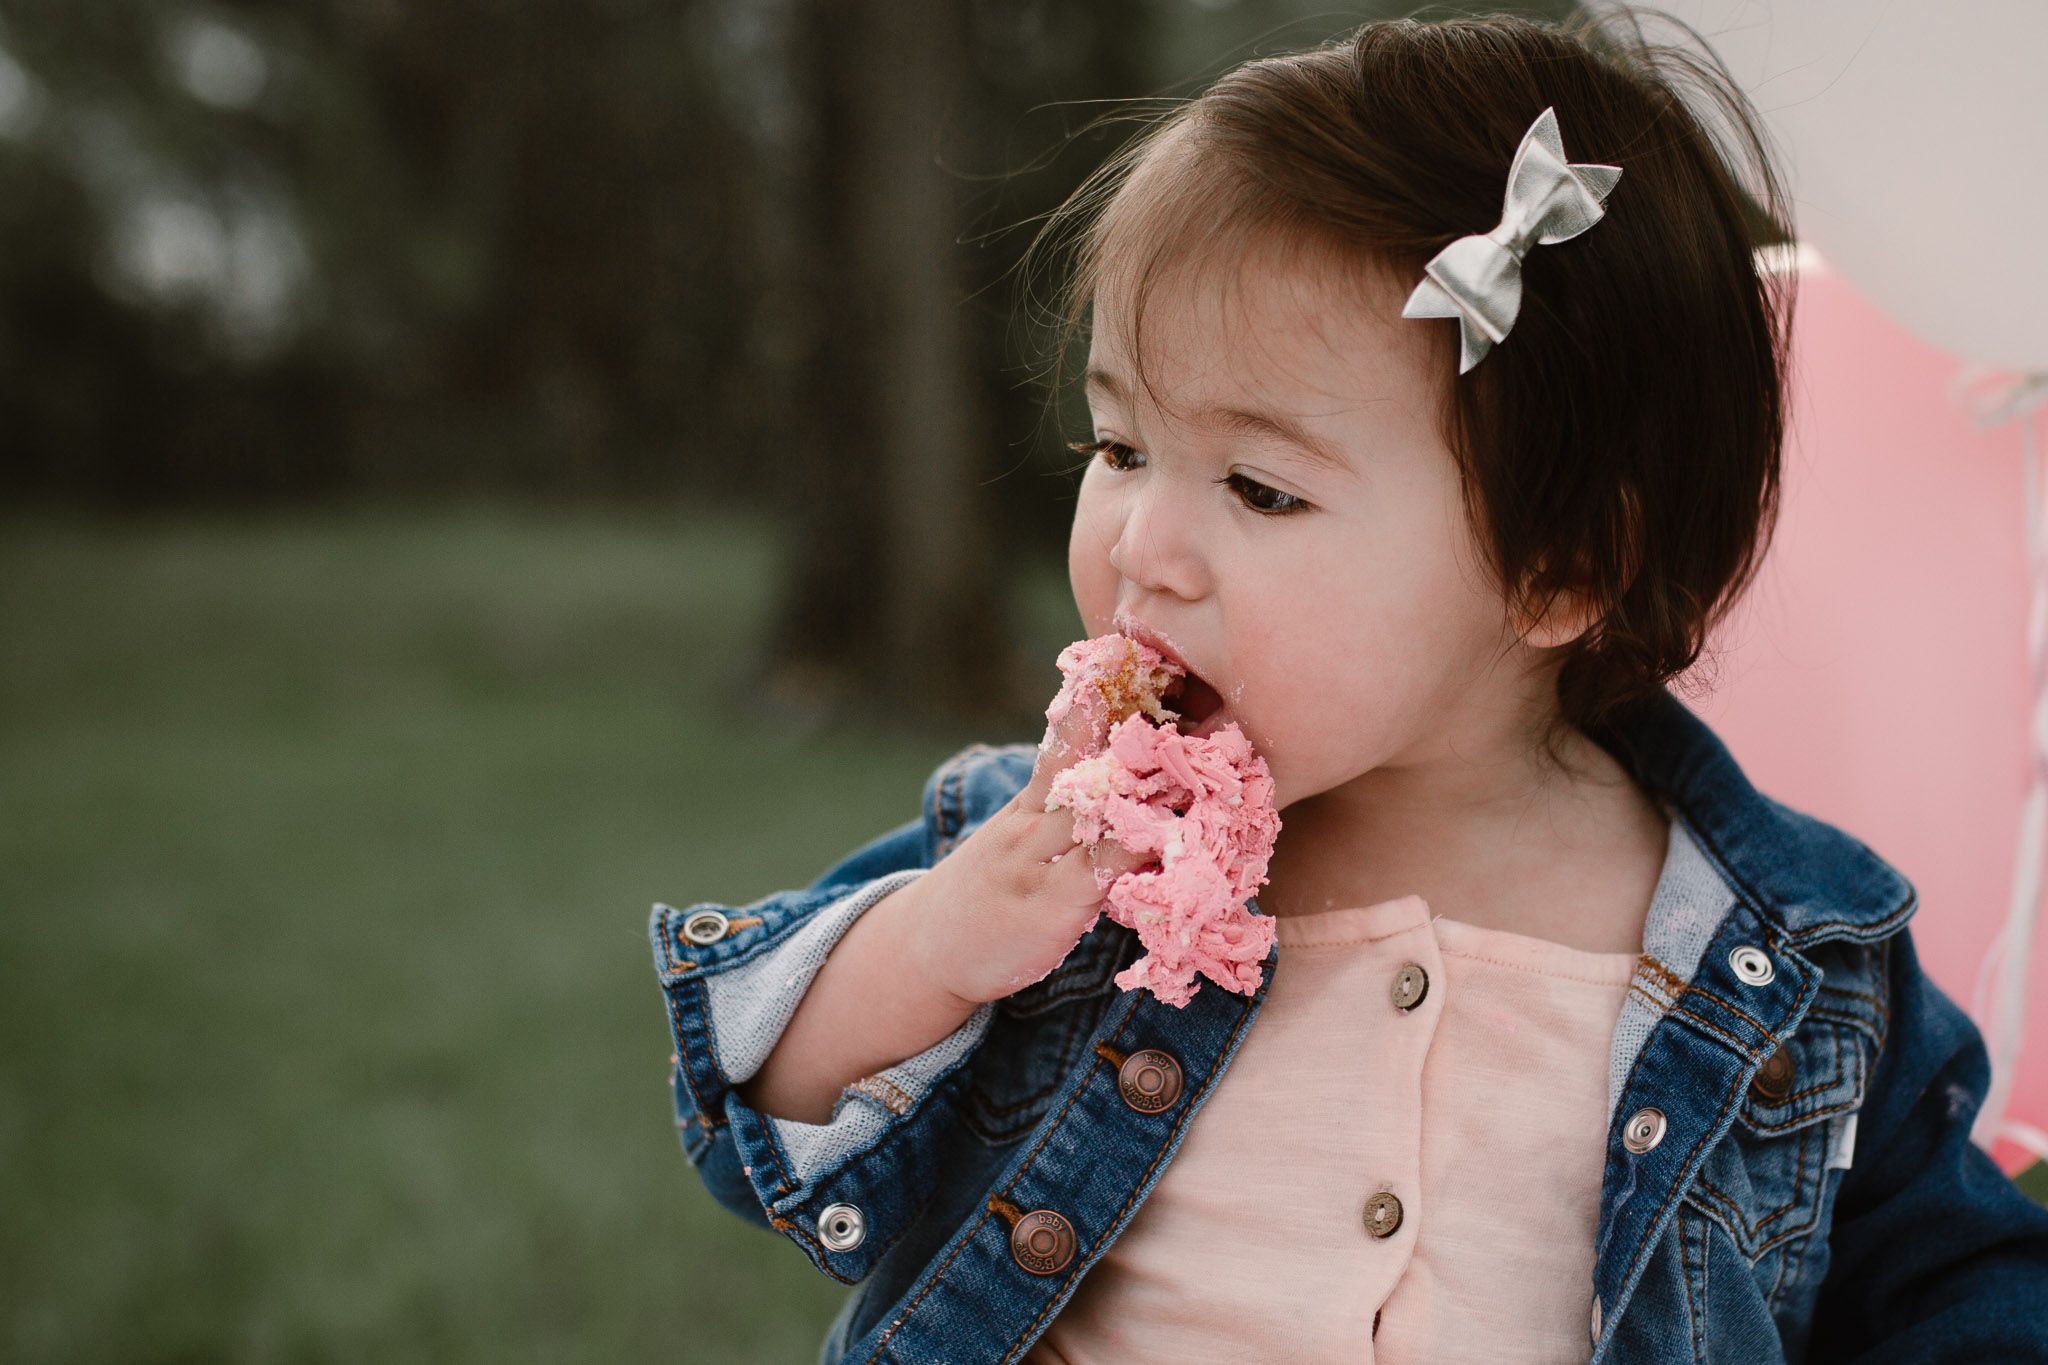 One year old birthday girl eating a fistful of pink icing at Red Rock Overlook in Leesburg, VA